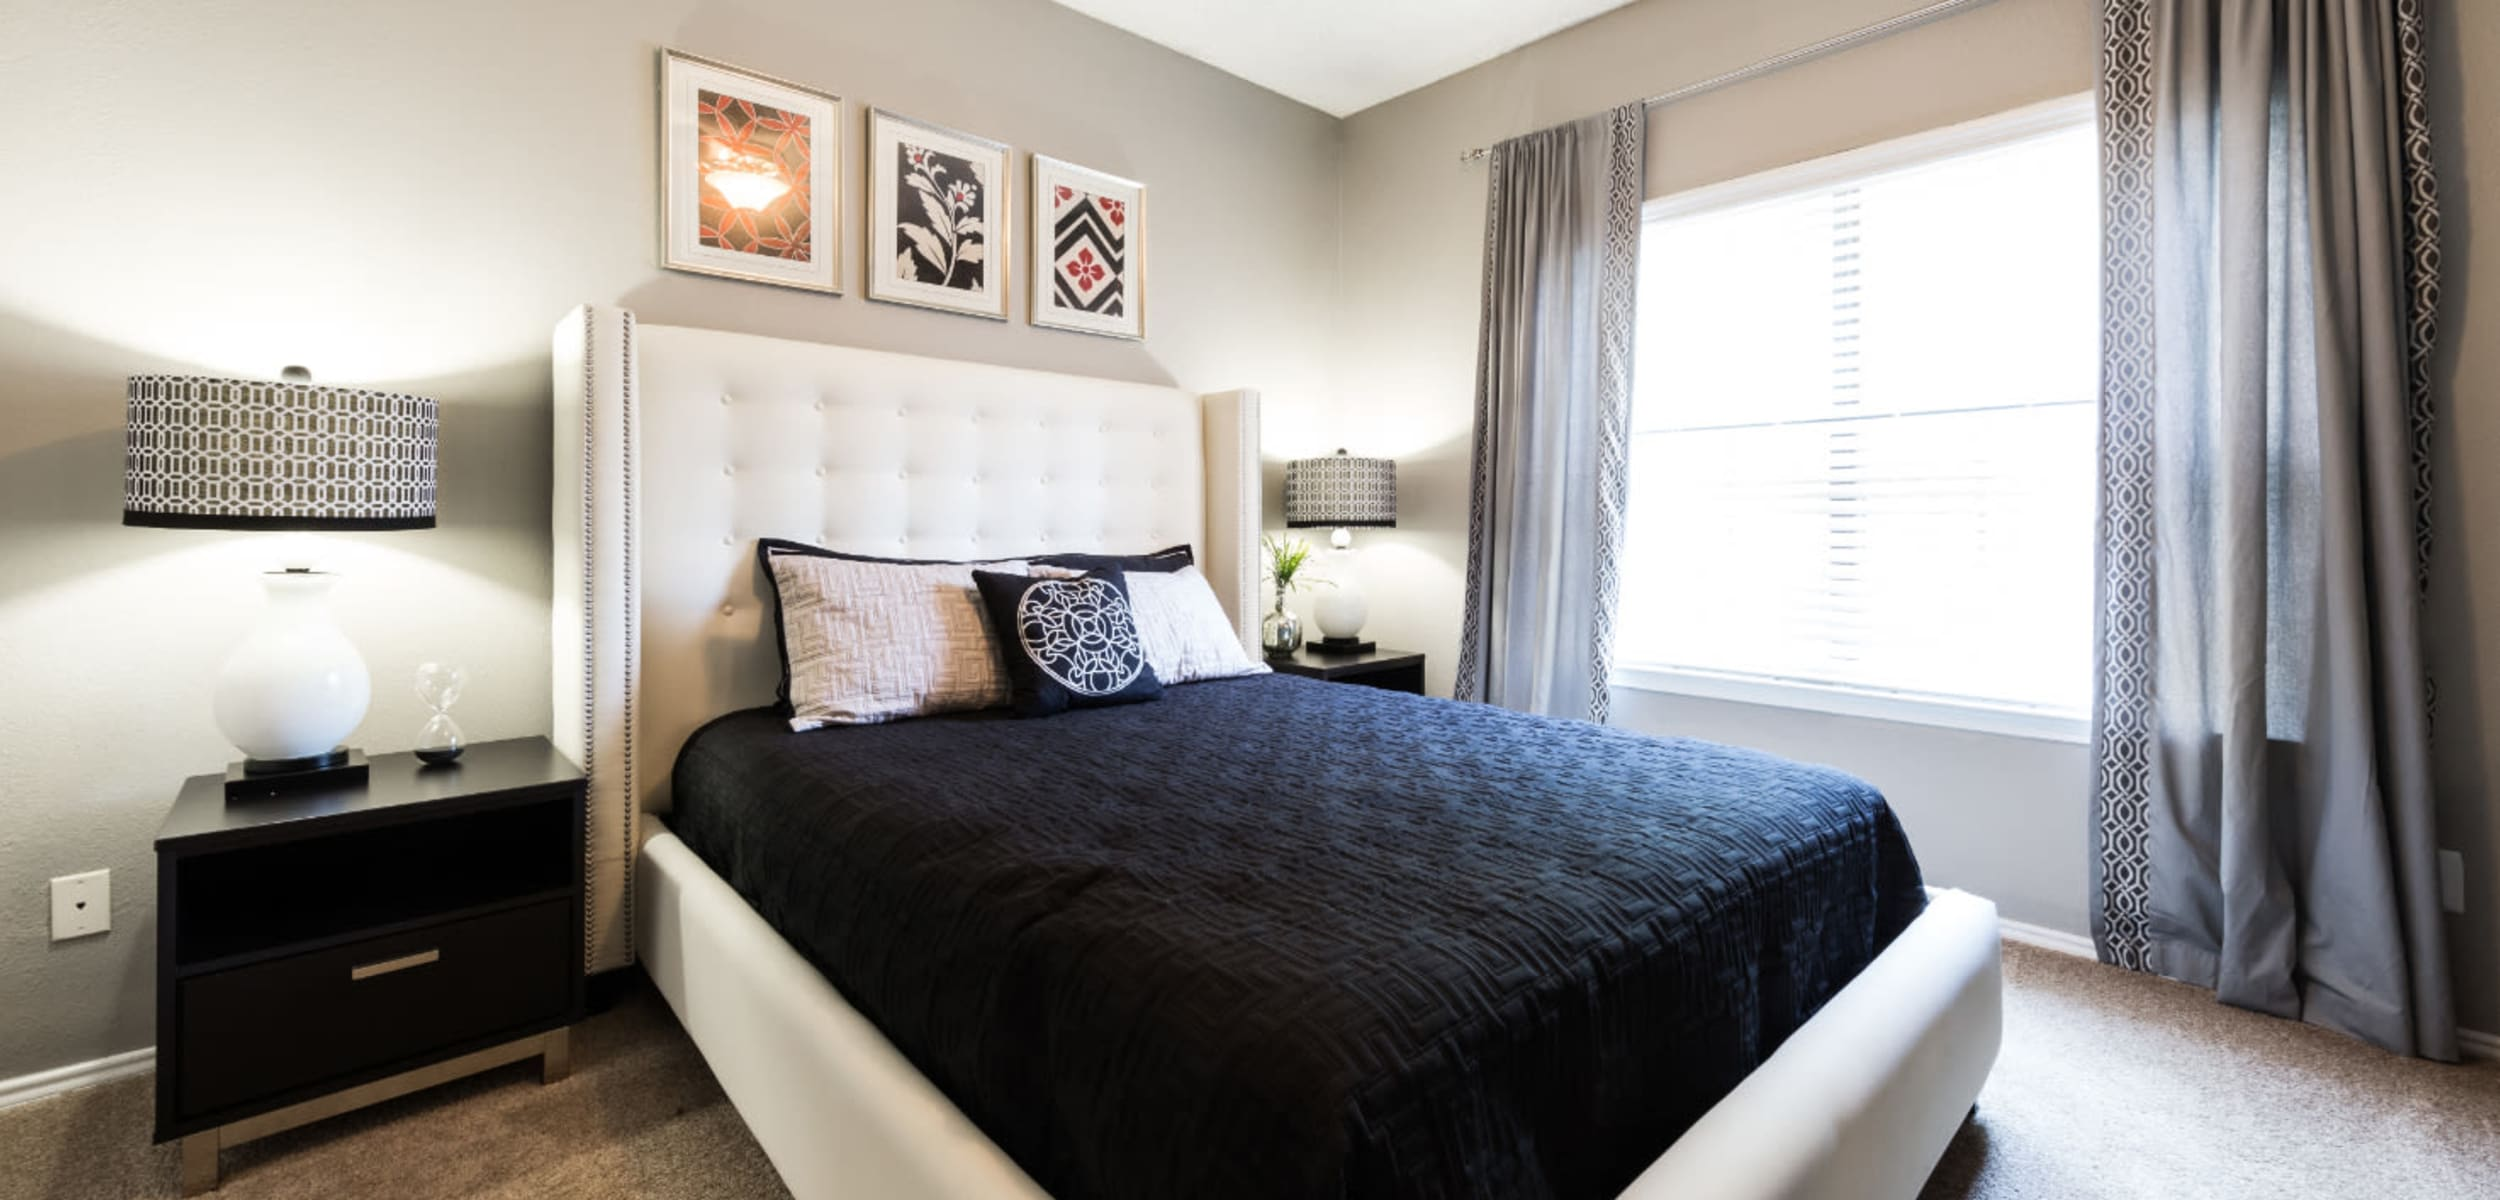 Bedroom with a large window at Marquis at Legacy in Plano, Texas